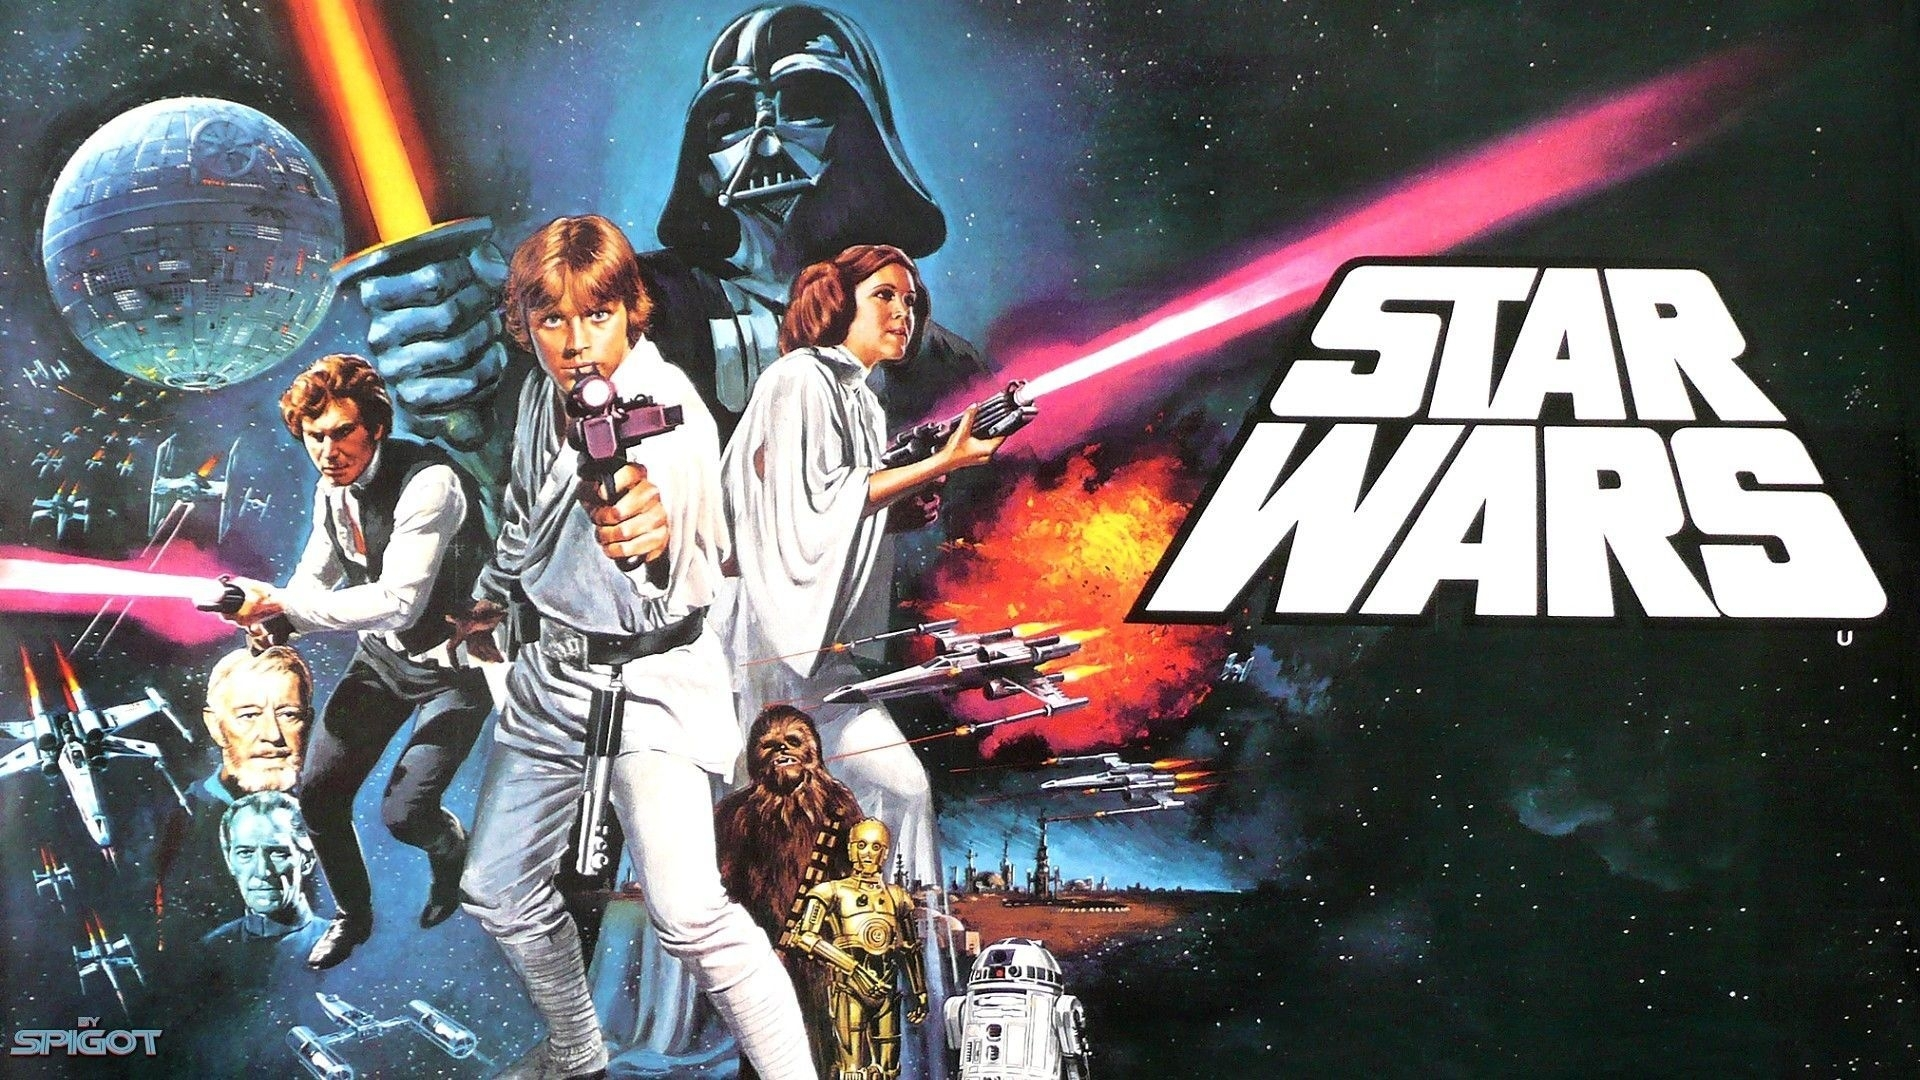 star wars wallpapers 1920x1080 - wallpaper cave | upps